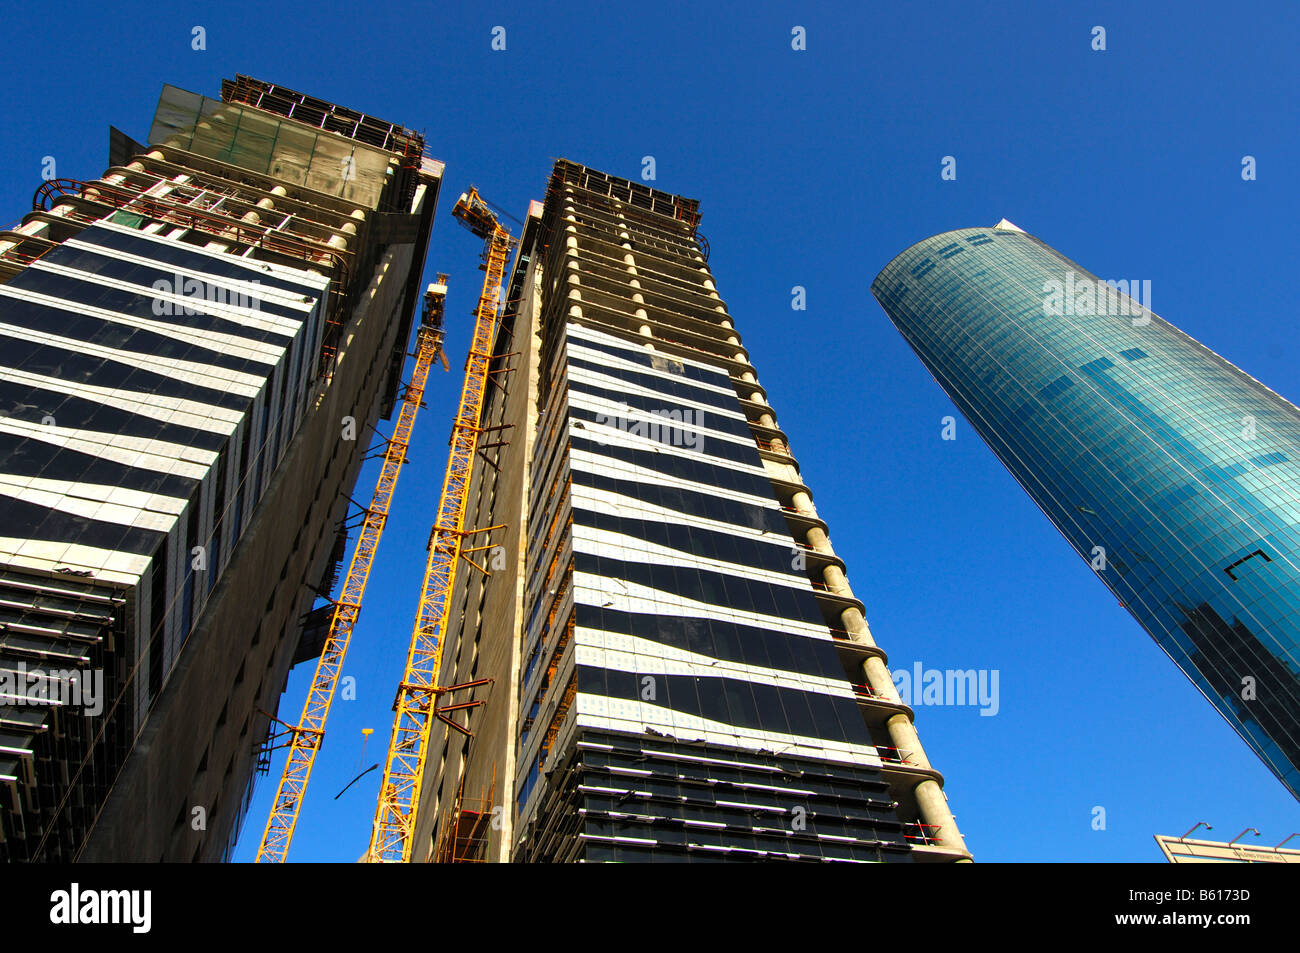 Building site on the Sheikh Zayed Road, completed multistory building and the unfinished Twin Towers, Dubai - Stock Image